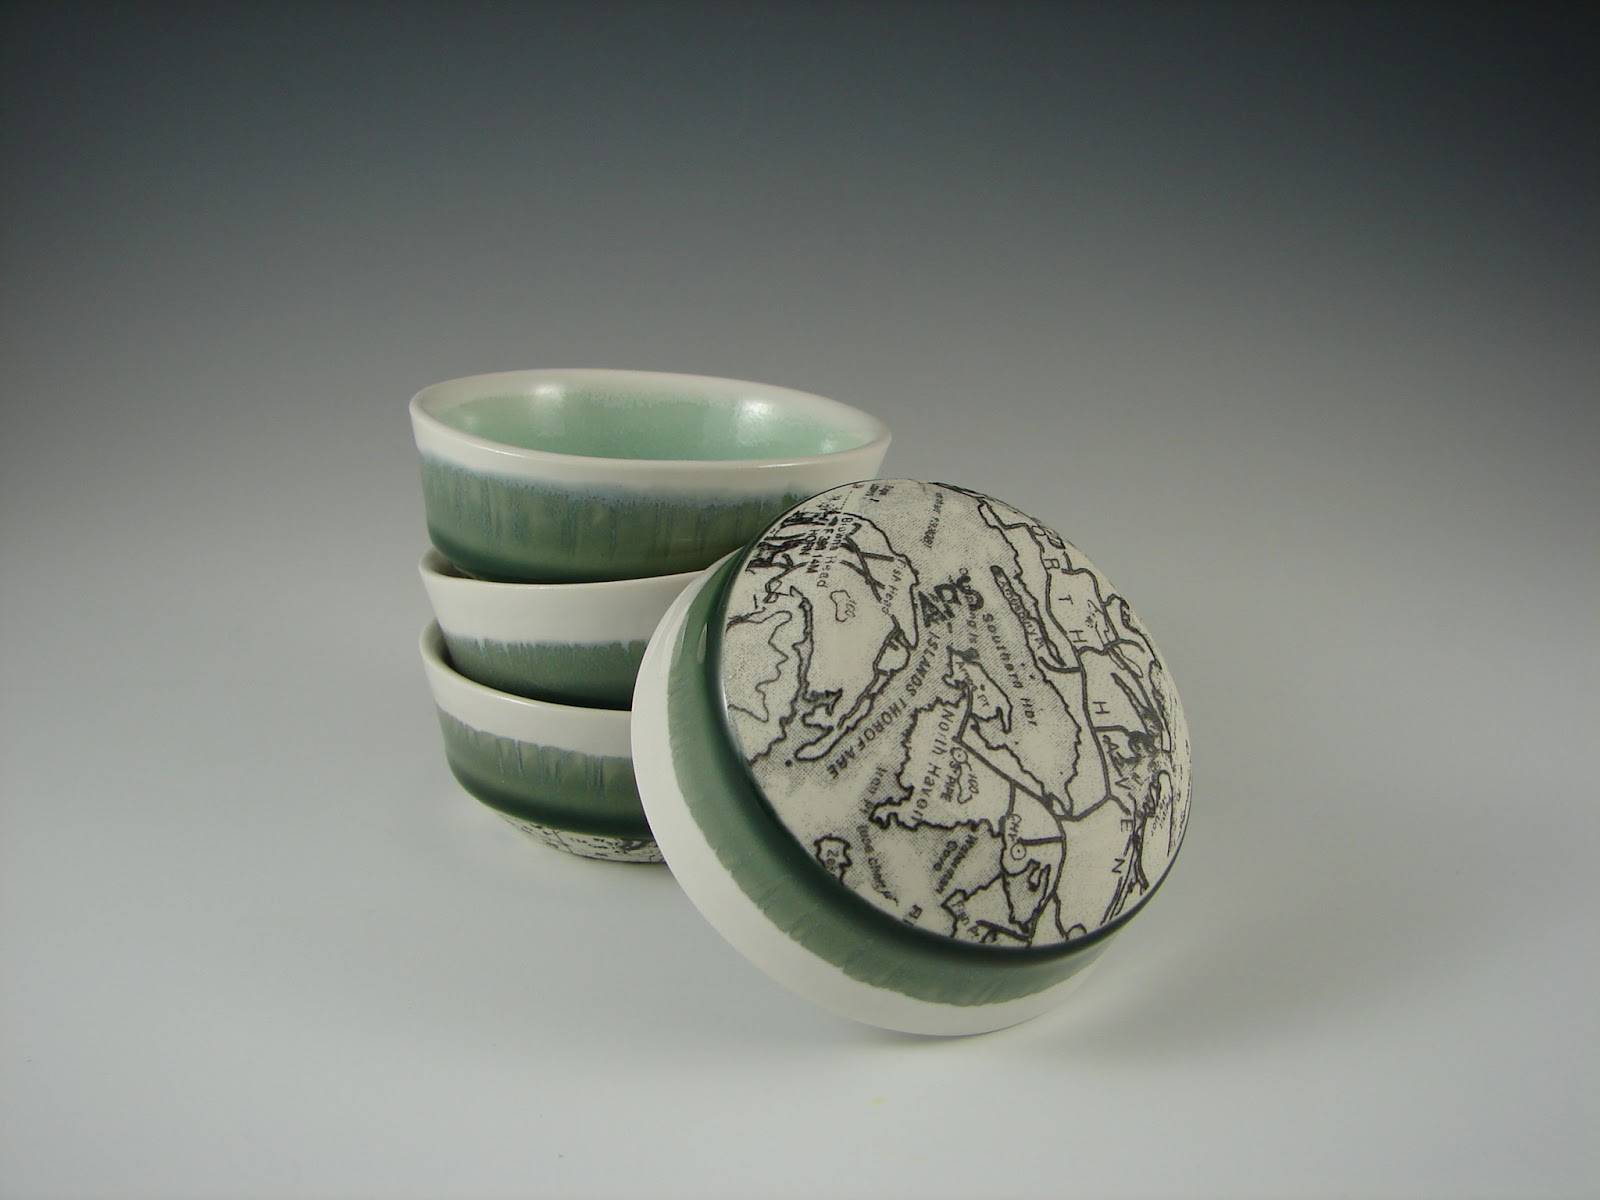 Salt Cellars with chart wrapped bottom, porcelain and decals, H. 1.5'', 2013.